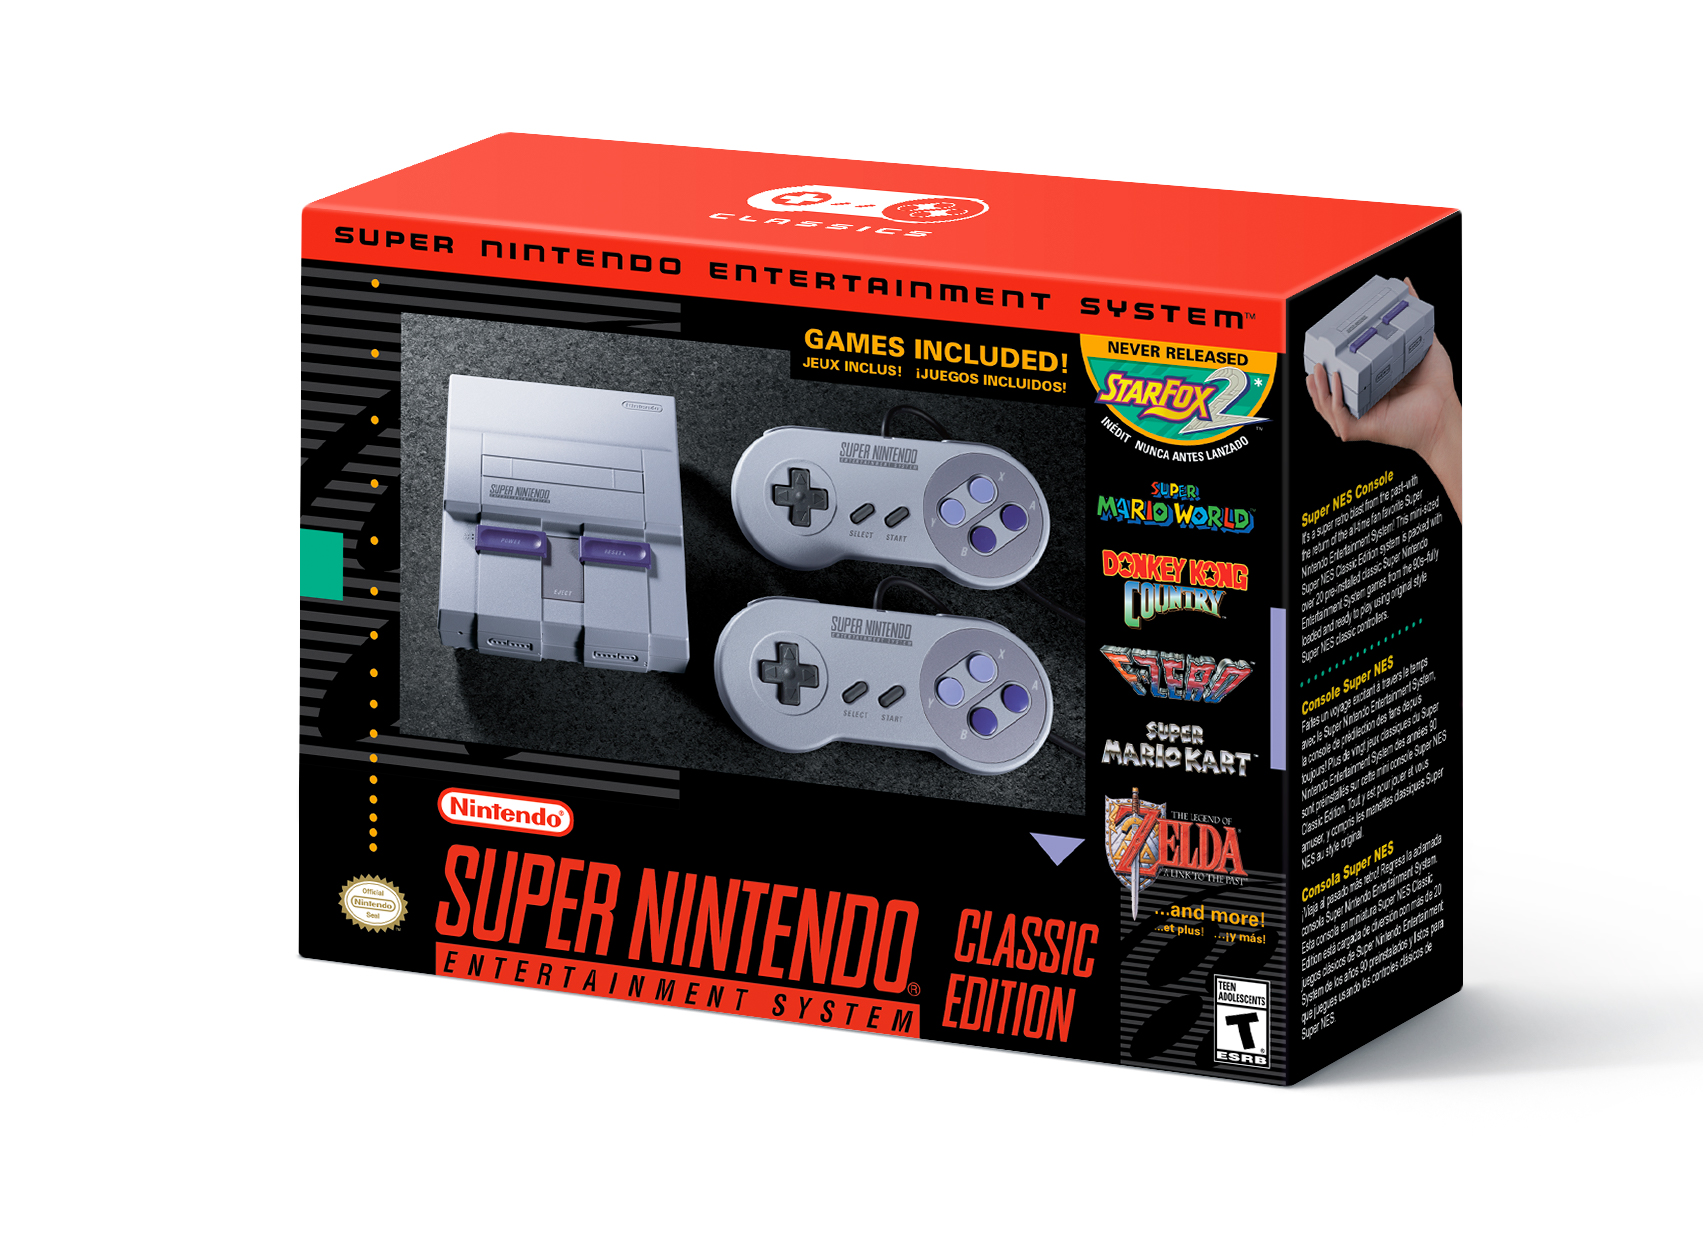 Super Nintendo Entertainment System Classic Edition is coming September 29